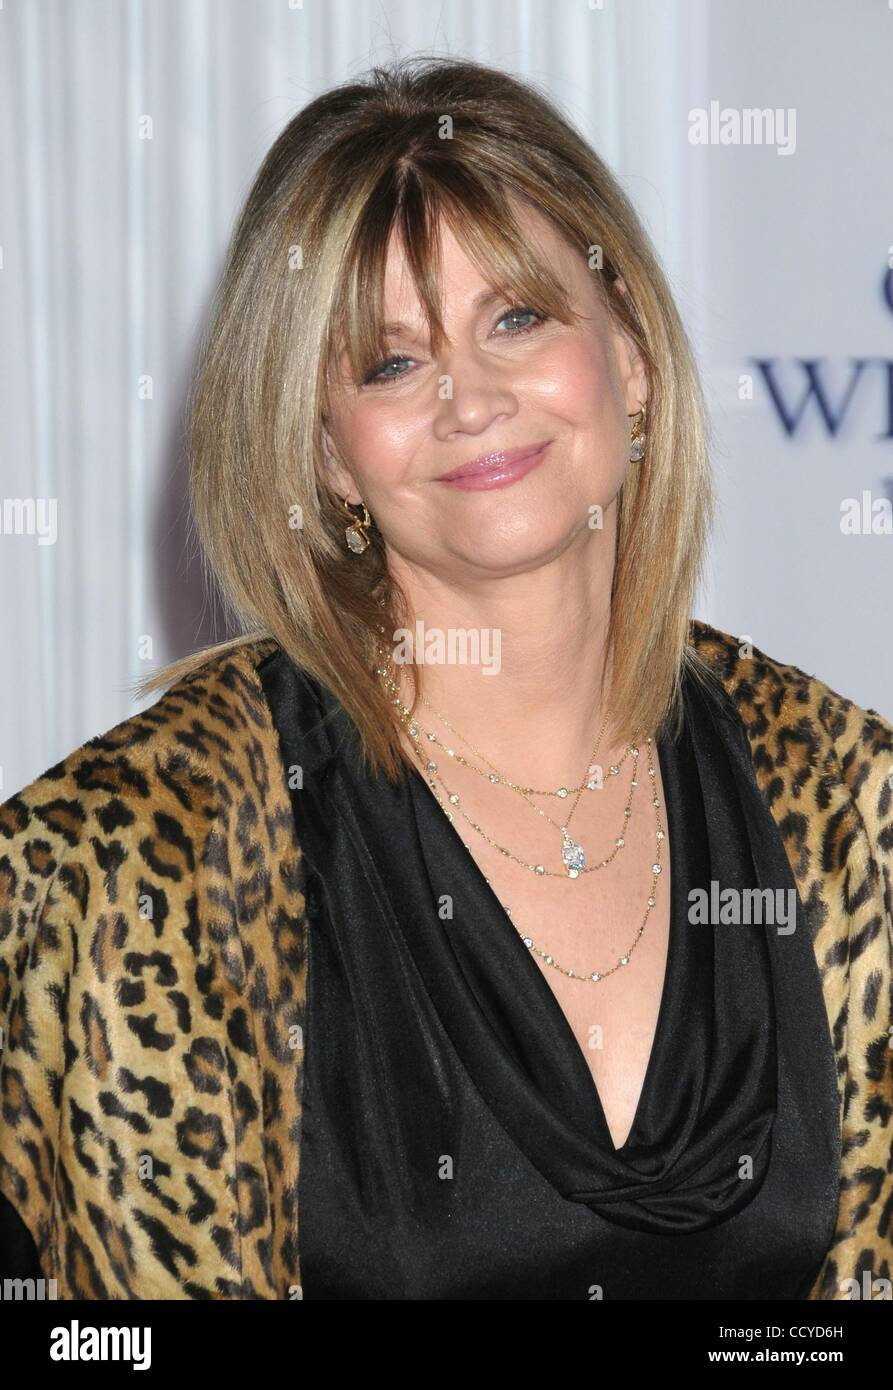 Mar 01, 2010 - Los Angeles, California, USA - Actress MARKIE POST  at the  'Ghost Whisperer' Celebrates - Stock Image